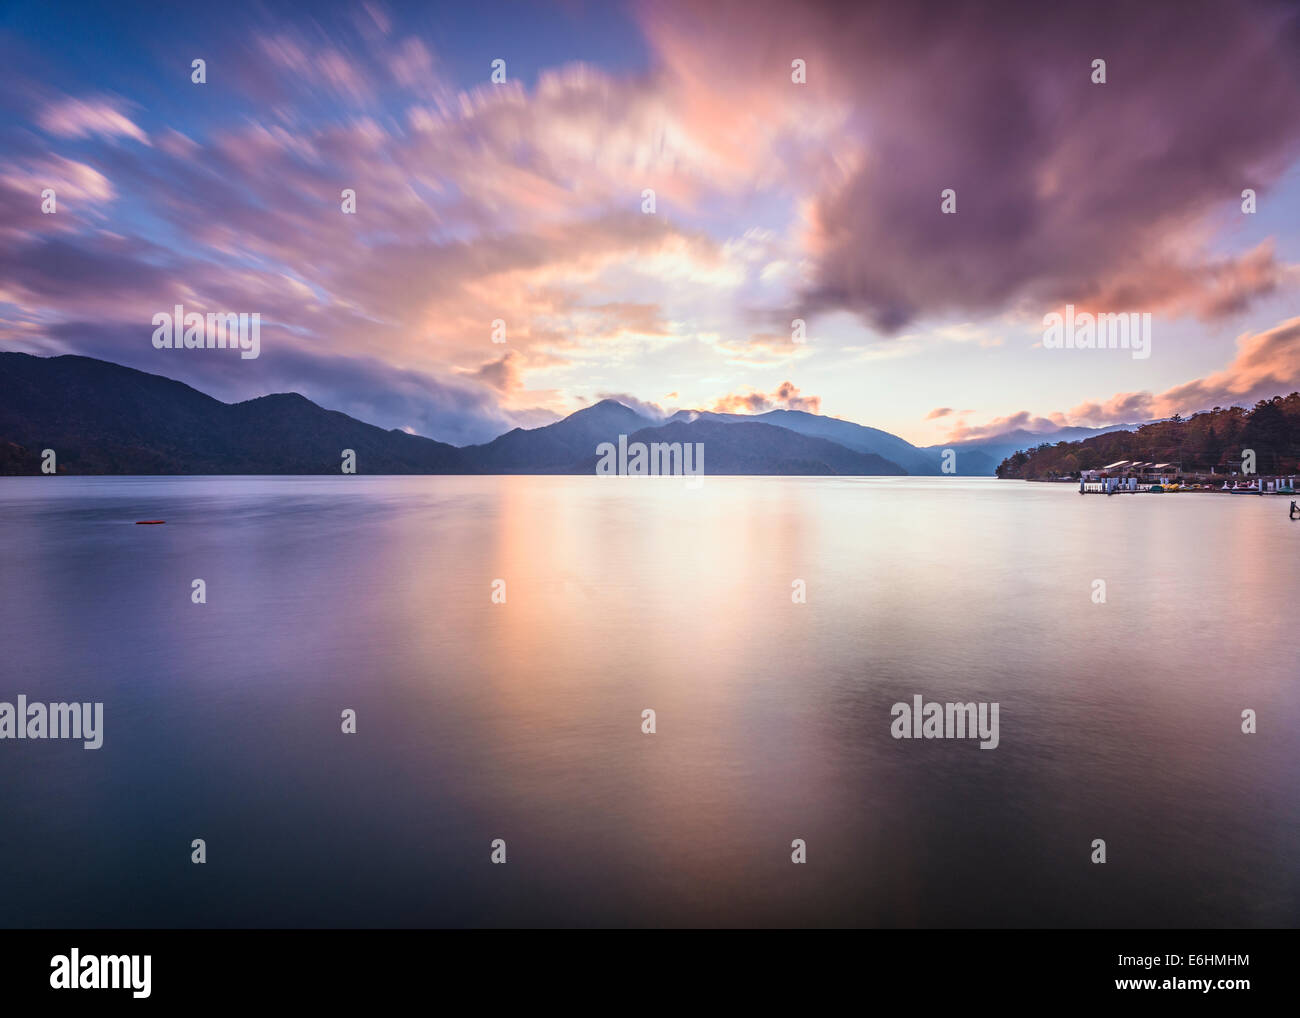 Lake Chuzenji in Nikko, Japan. - Stock Image